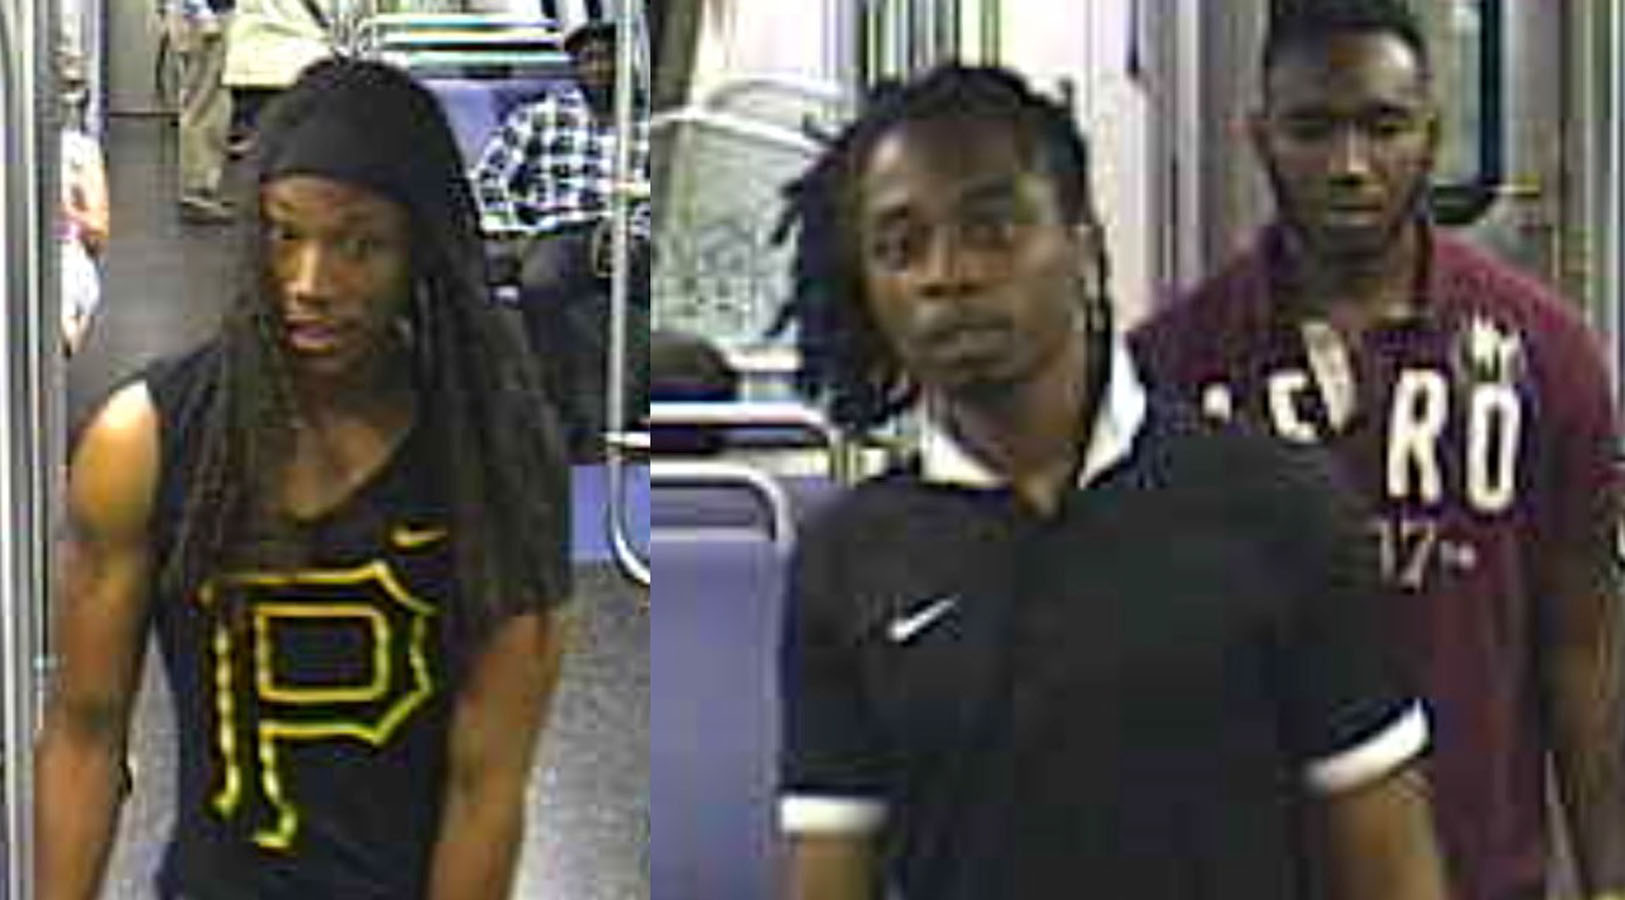 Metro police look for 3 men involved in woman's sexual assault